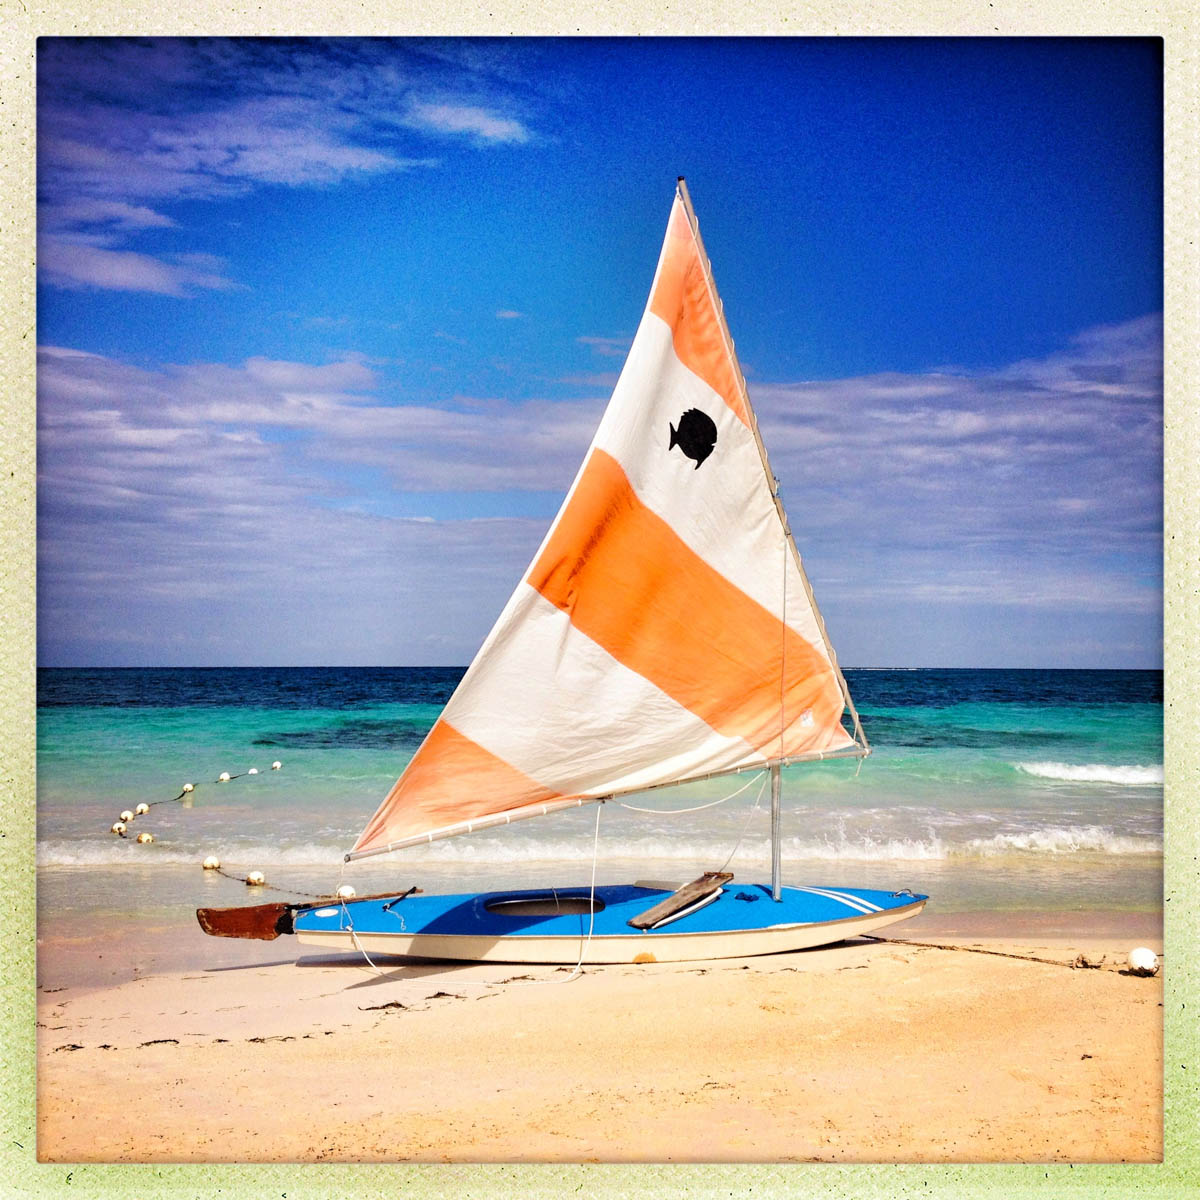 iphone-travel-jamaica-29